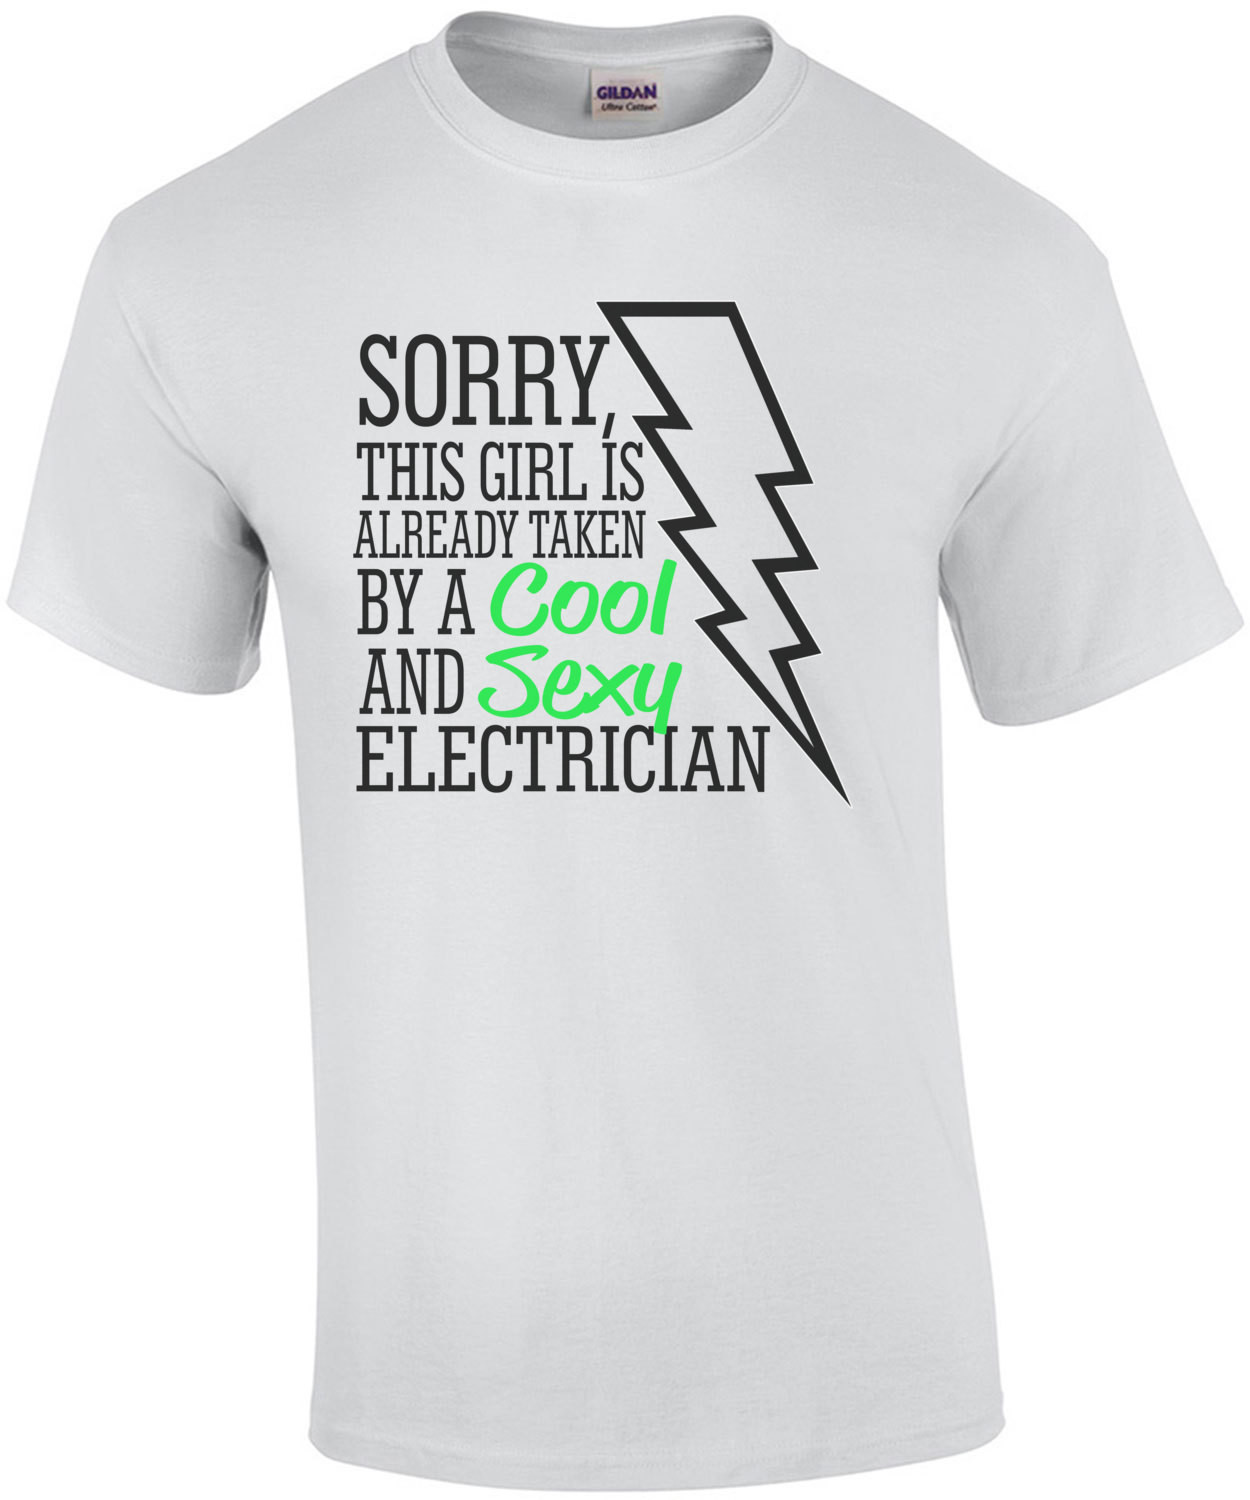 Sorry This Girl Is Already Taken By A Cool And Sexy Electrician T-Shirt